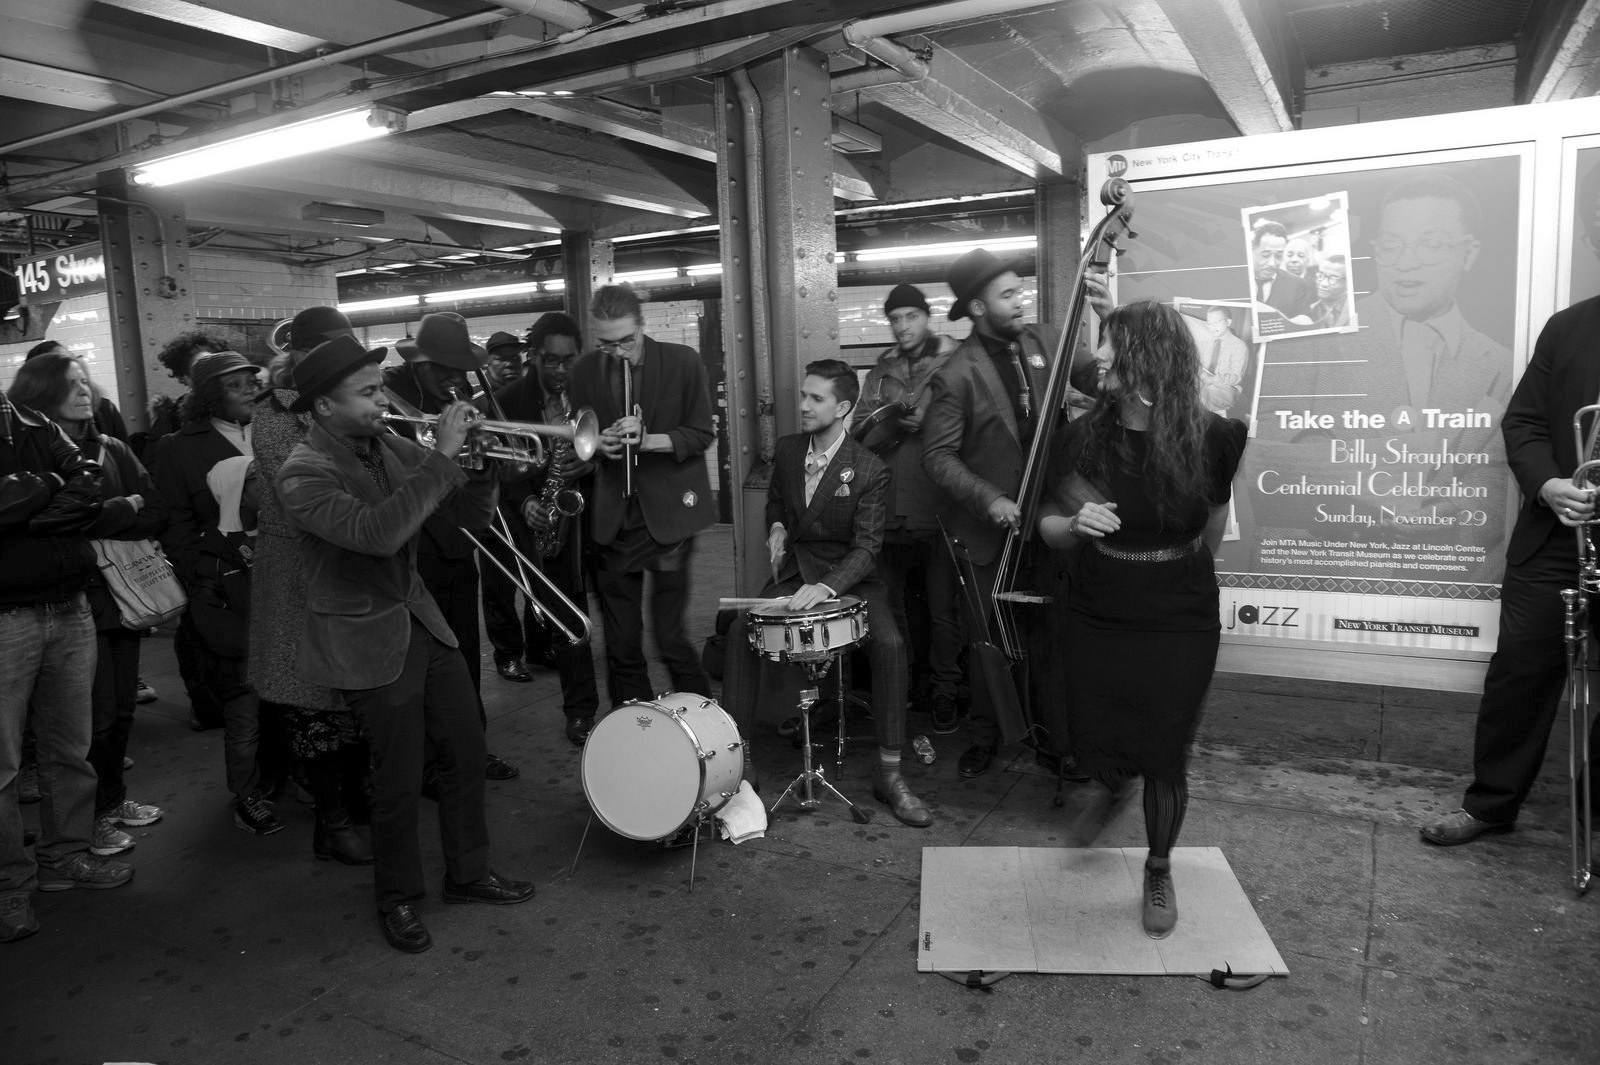 Músicos en el metro de Nueva York. Fotografía: Metropolitan Transportation Authority of the State of New York (CC).